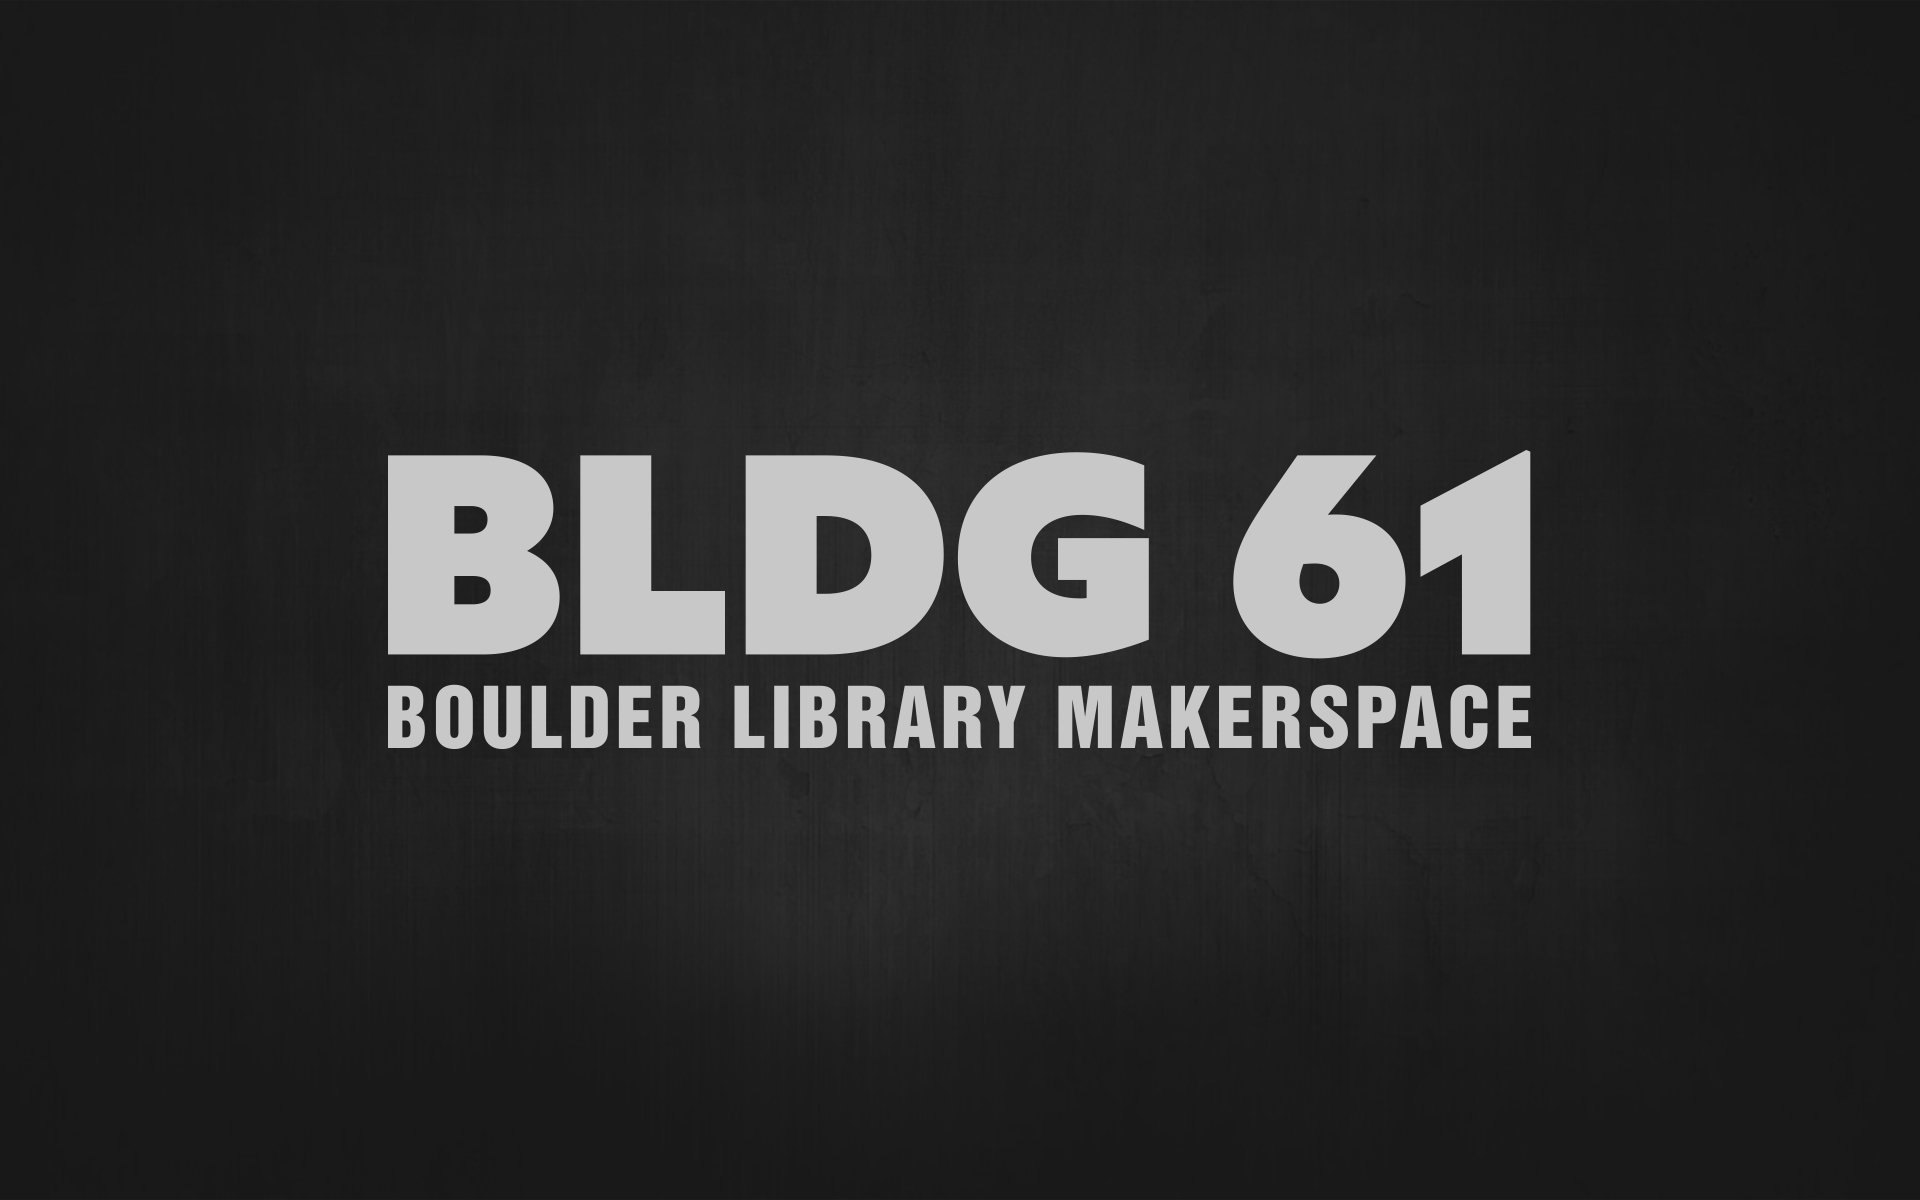 BLDG 61 Closed for Upgrades!